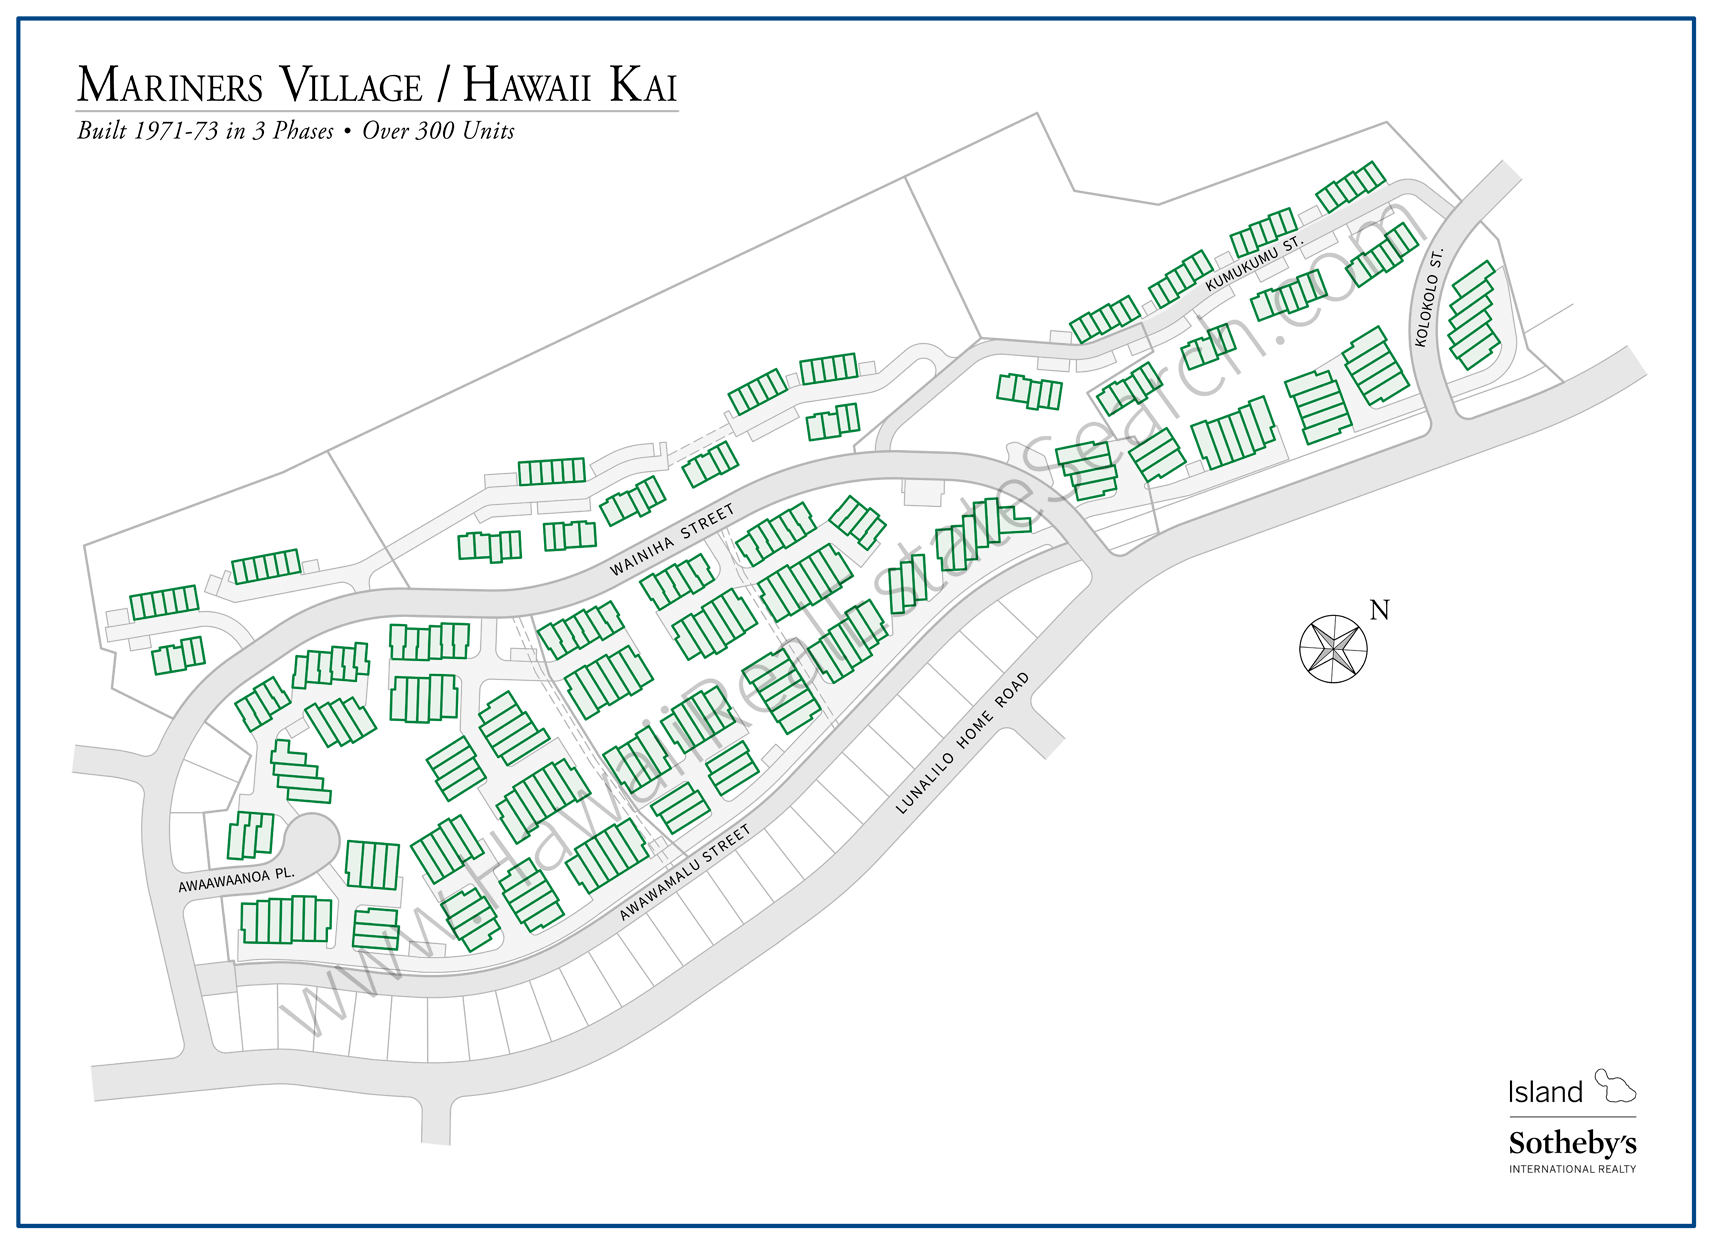 Mariners Village Hawaii Kai Map